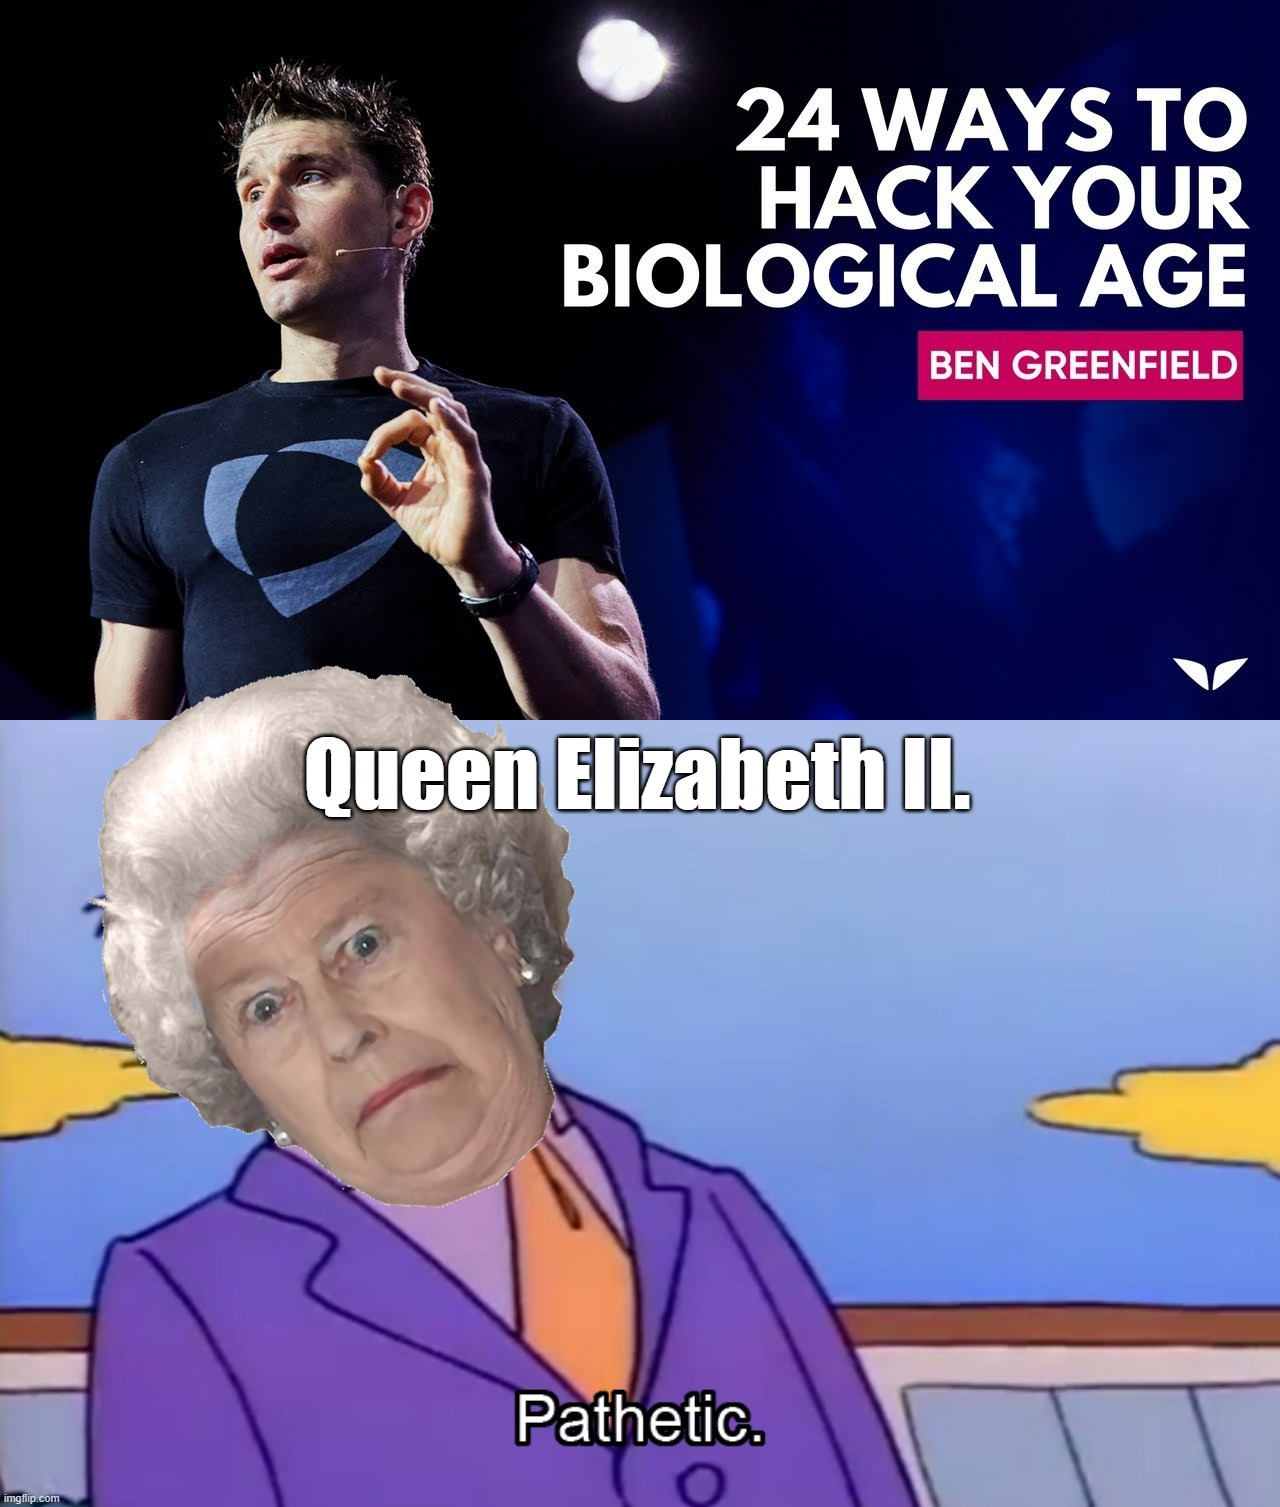 Queen Elizabeth II. | image tagged in pathetic principal,queen elizabeth,queen of england,the queen elizabeth ii,uk,united kingdom | made w/ Imgflip meme maker